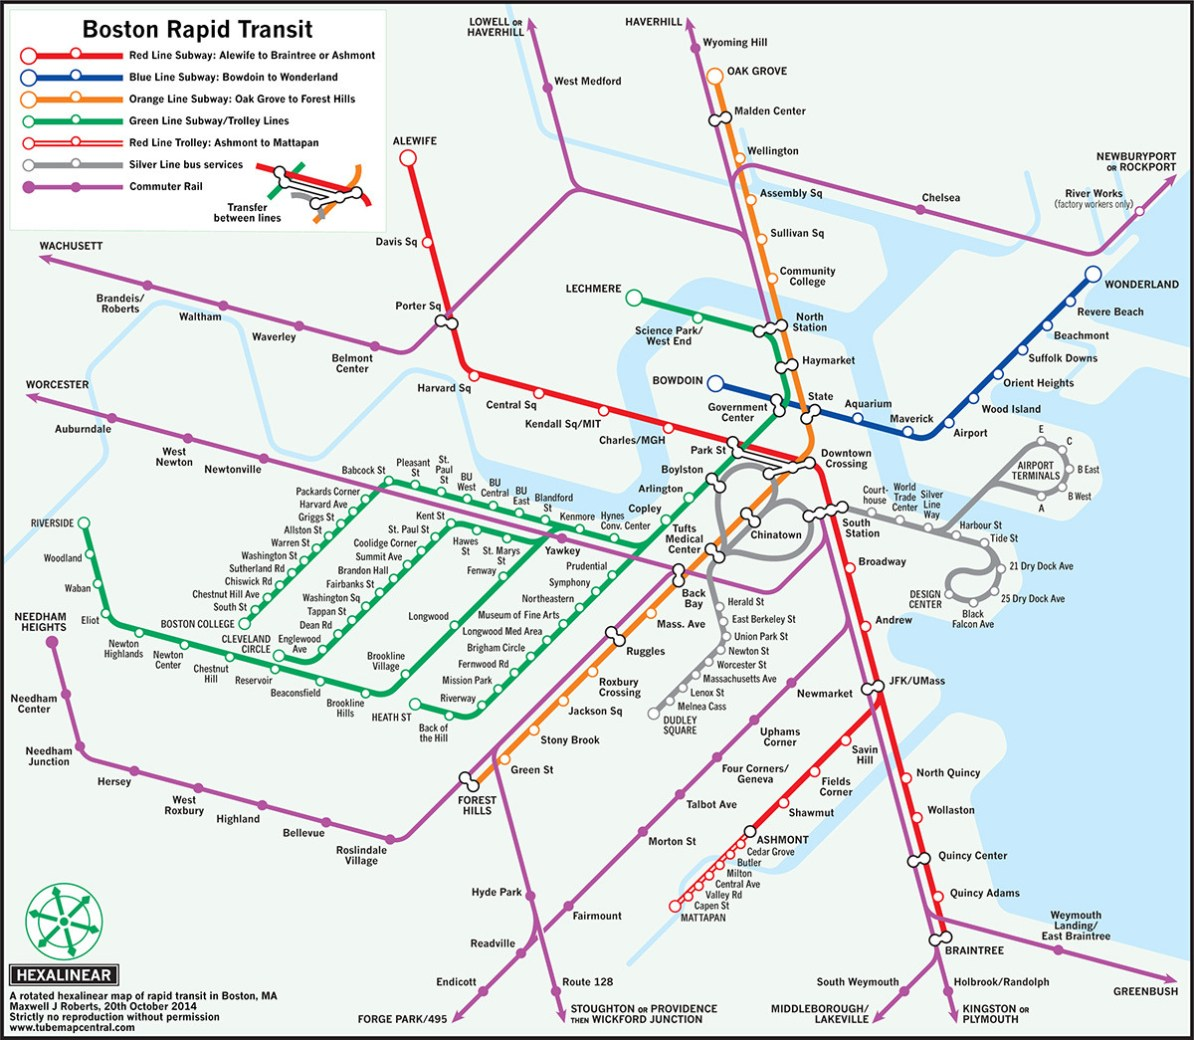 Chelsea Subway Map.Transit Maps Unofficial Maps Maxwell Roberts Variants On The